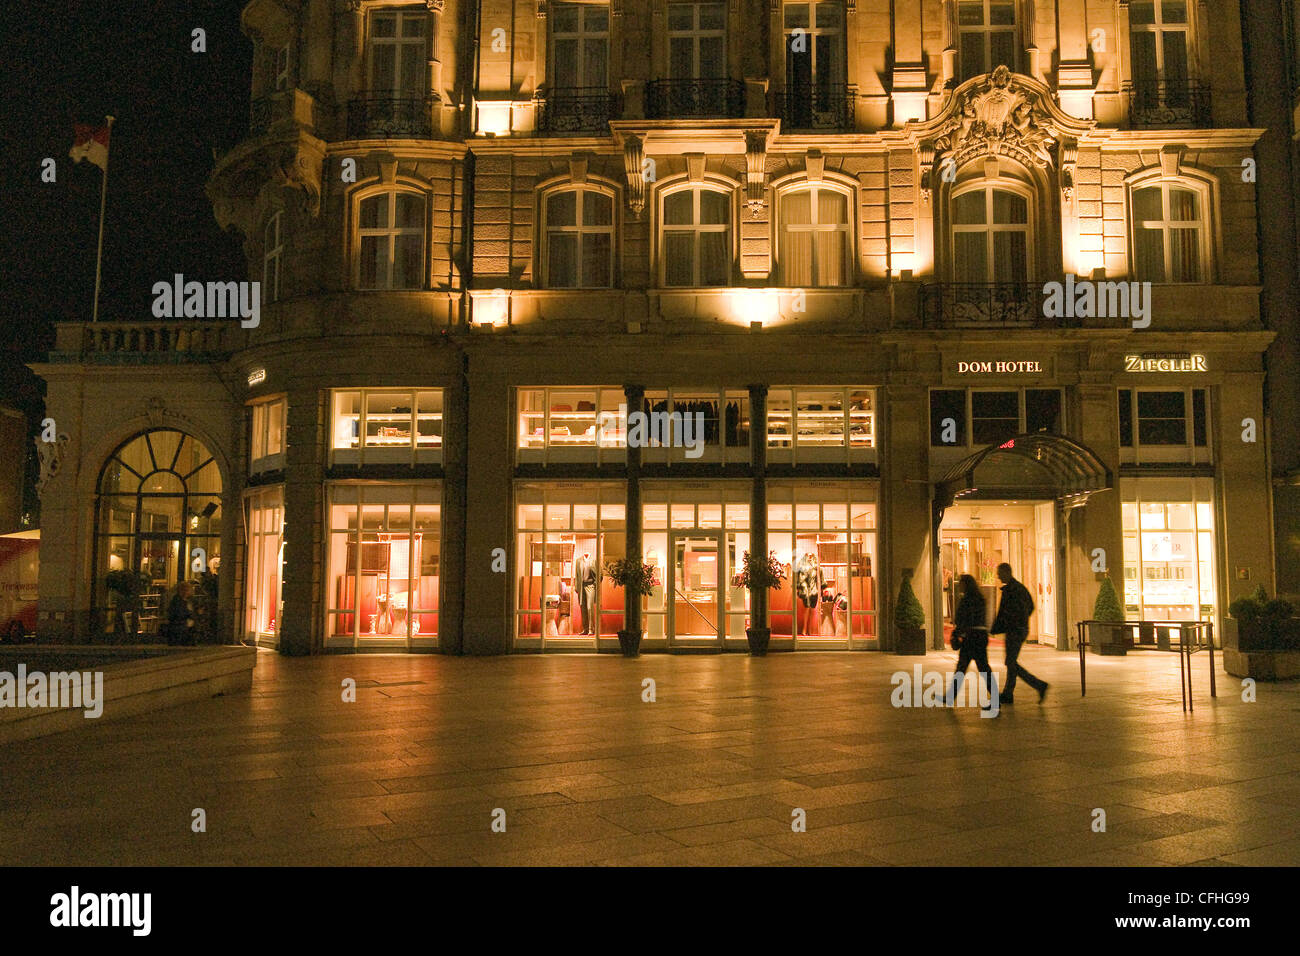 A couple walking at nght in the square near the Dom (cathedral) in Cologne, Germany - Stock Image